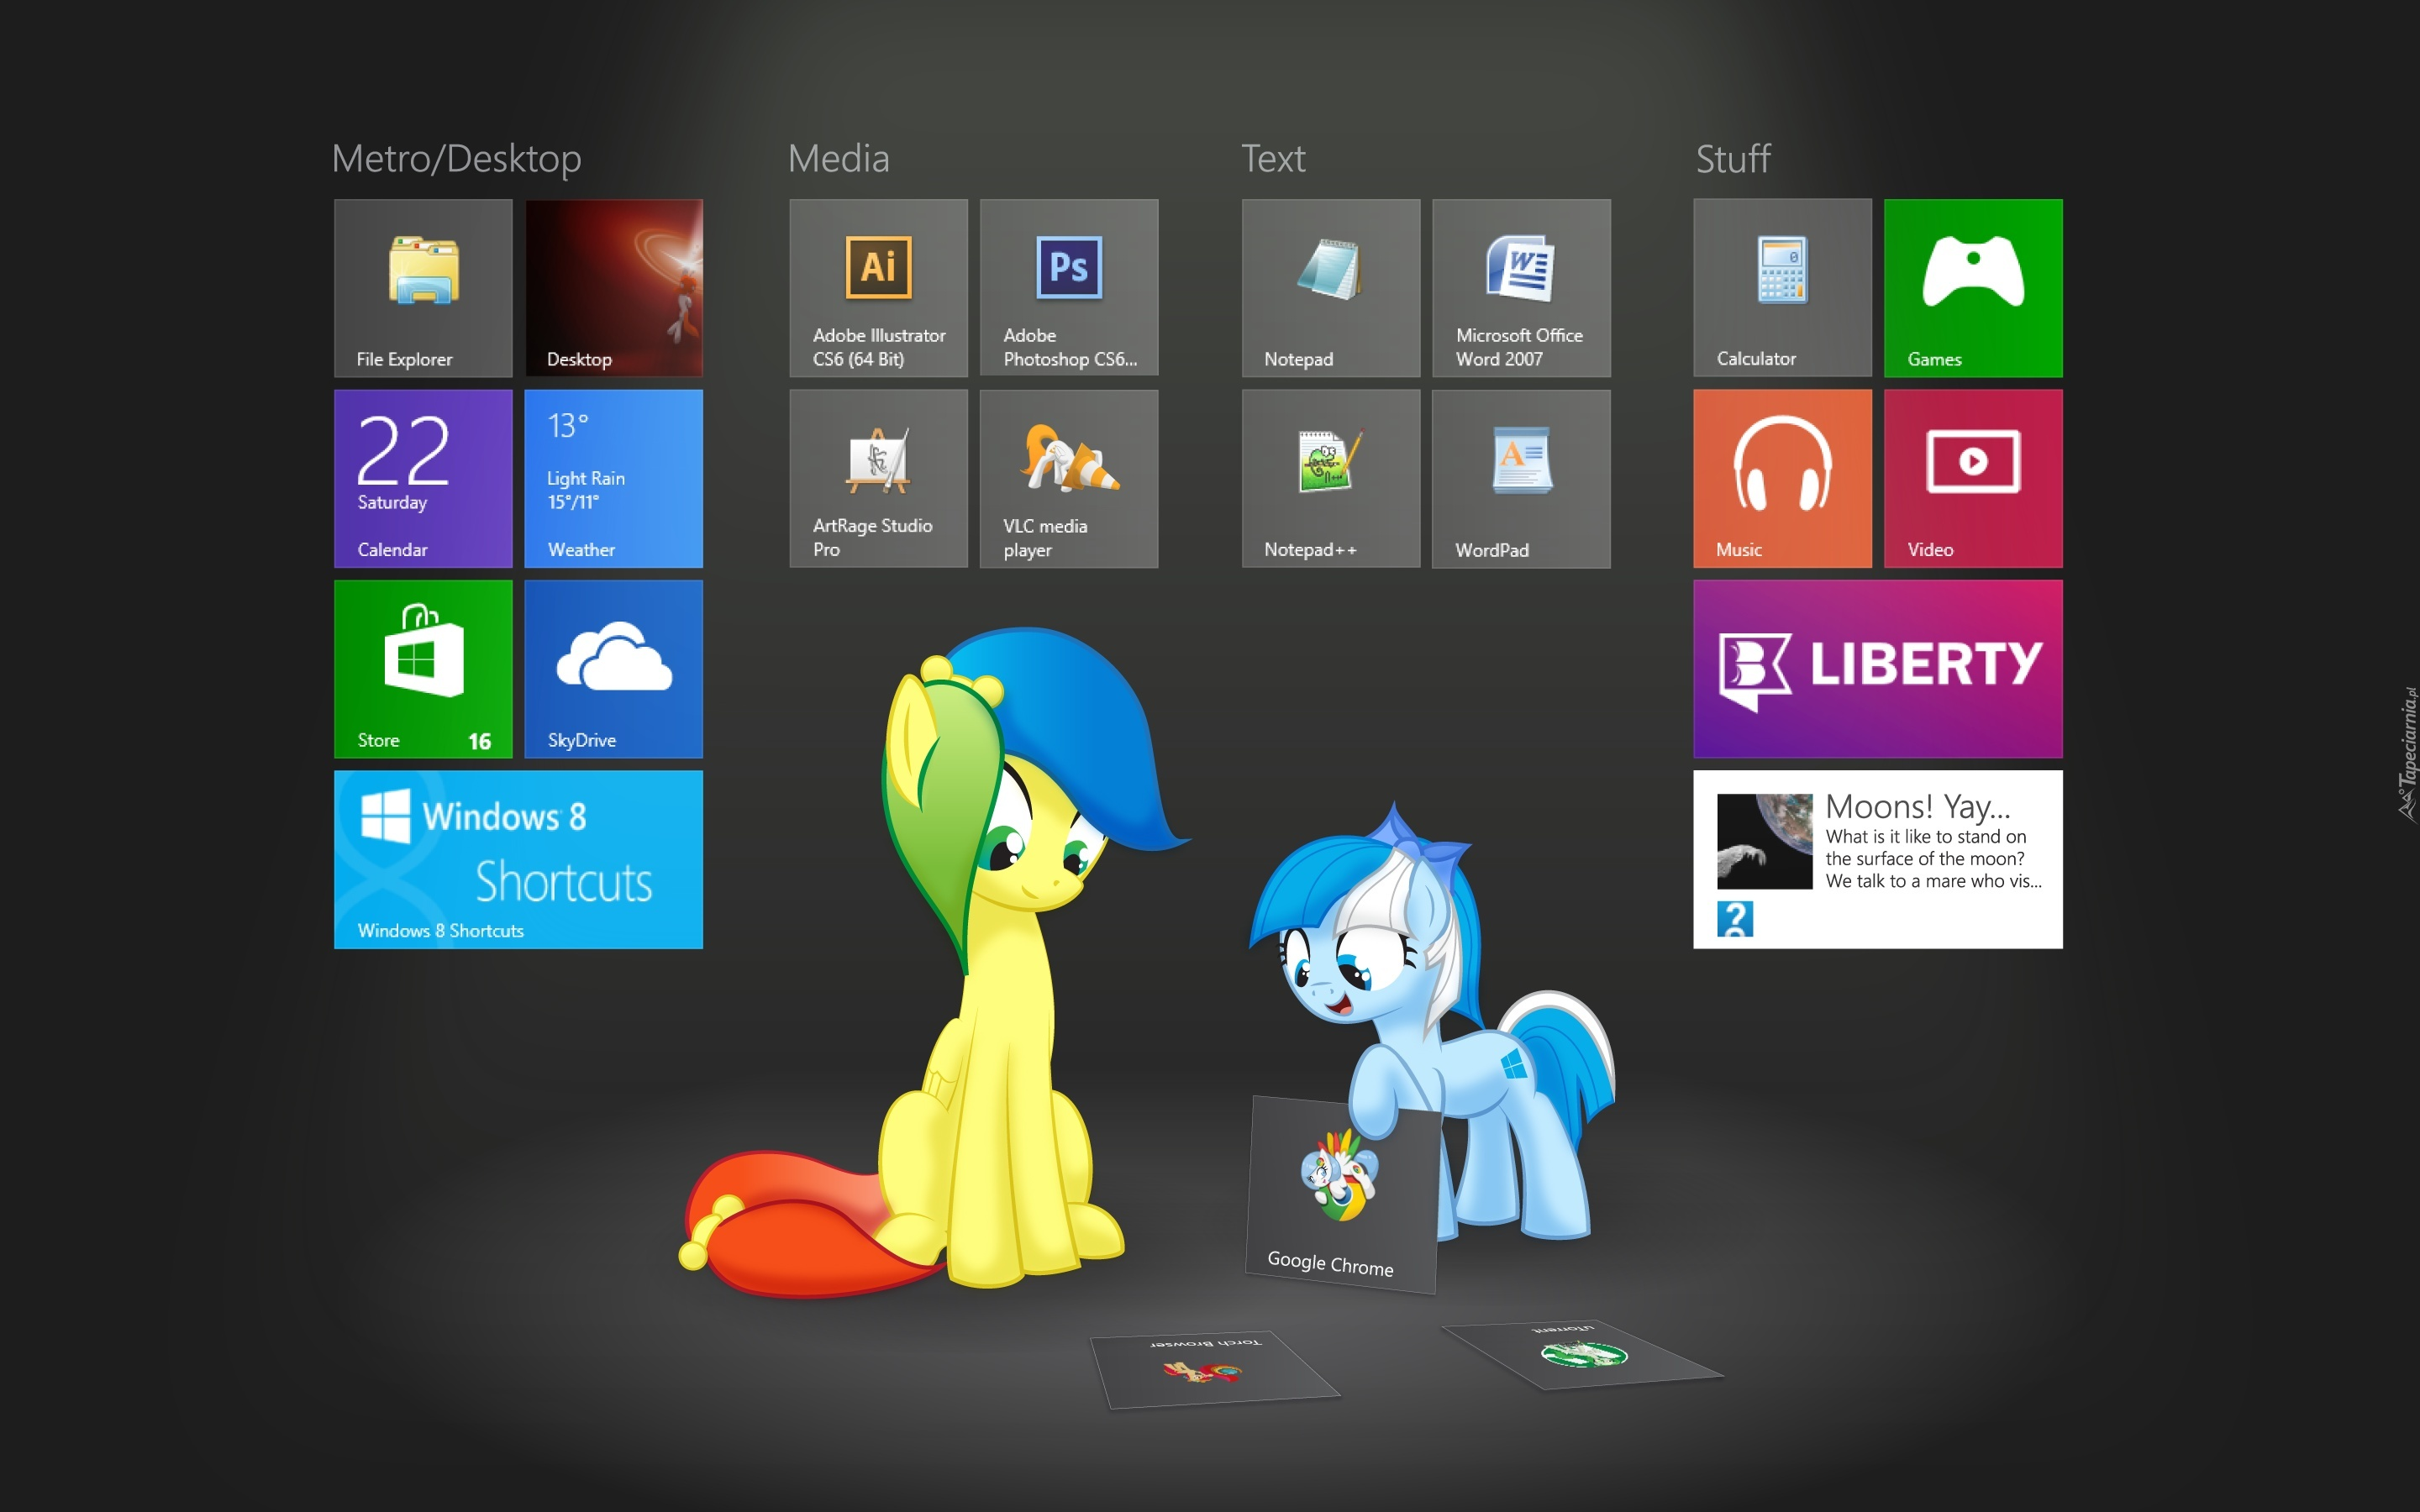 Windows 8, VLC